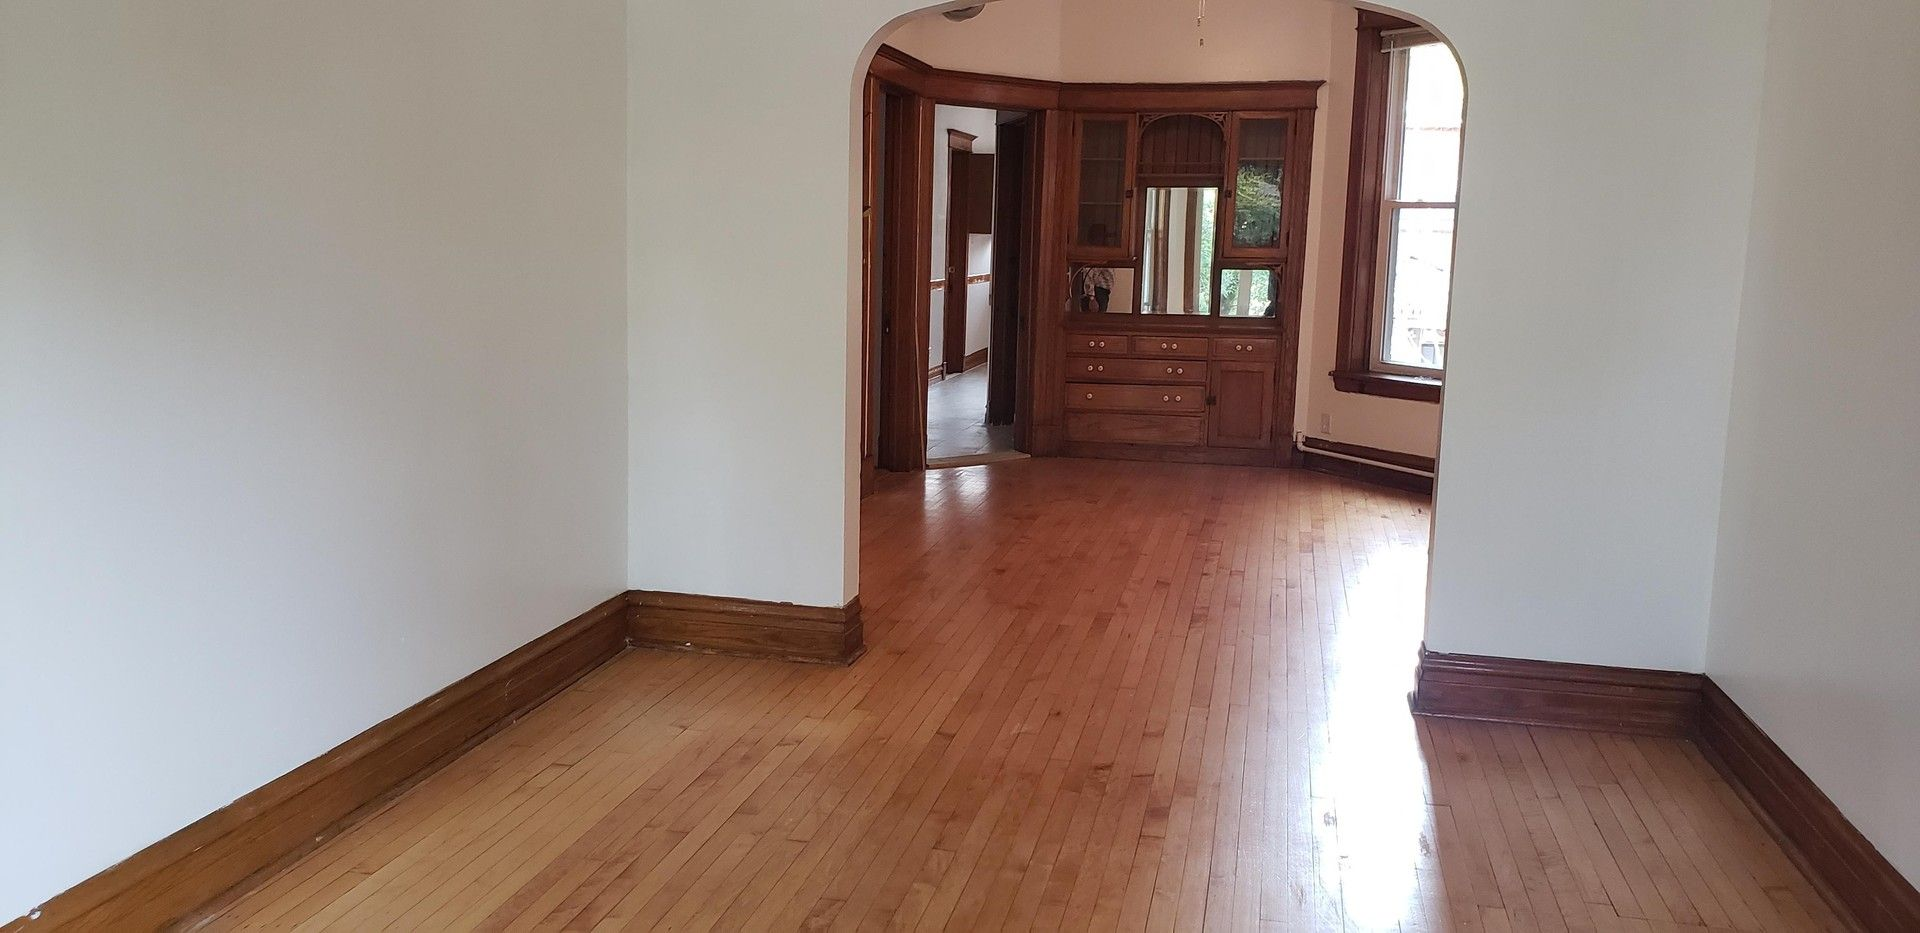 Photo 5: Photos: 2715 Evergreen Avenue Unit 2 in Chicago: CHI - West Town Residential Lease for lease ()  : MLS®# 10877768